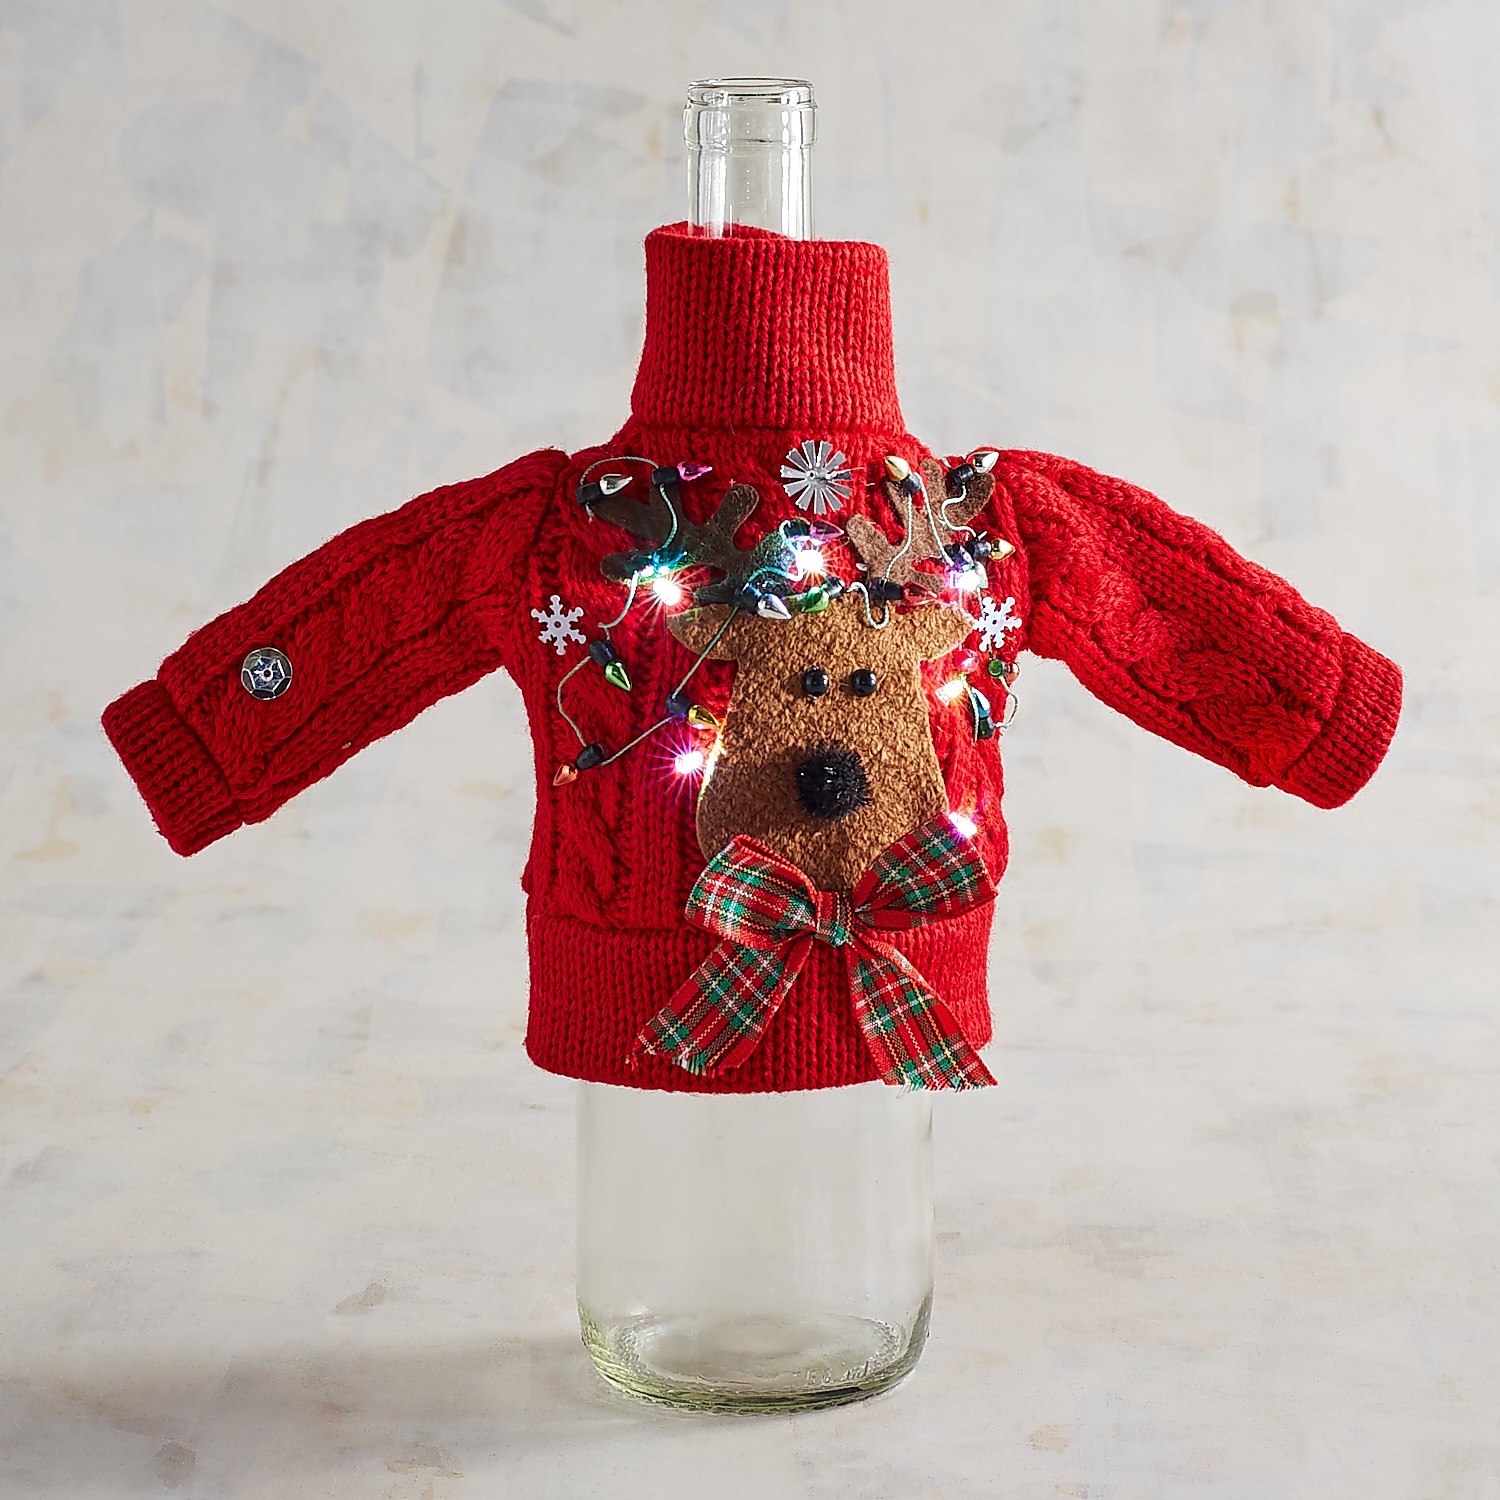 LED Light-Up Reindeer Christmas Sweater Bottle Cover